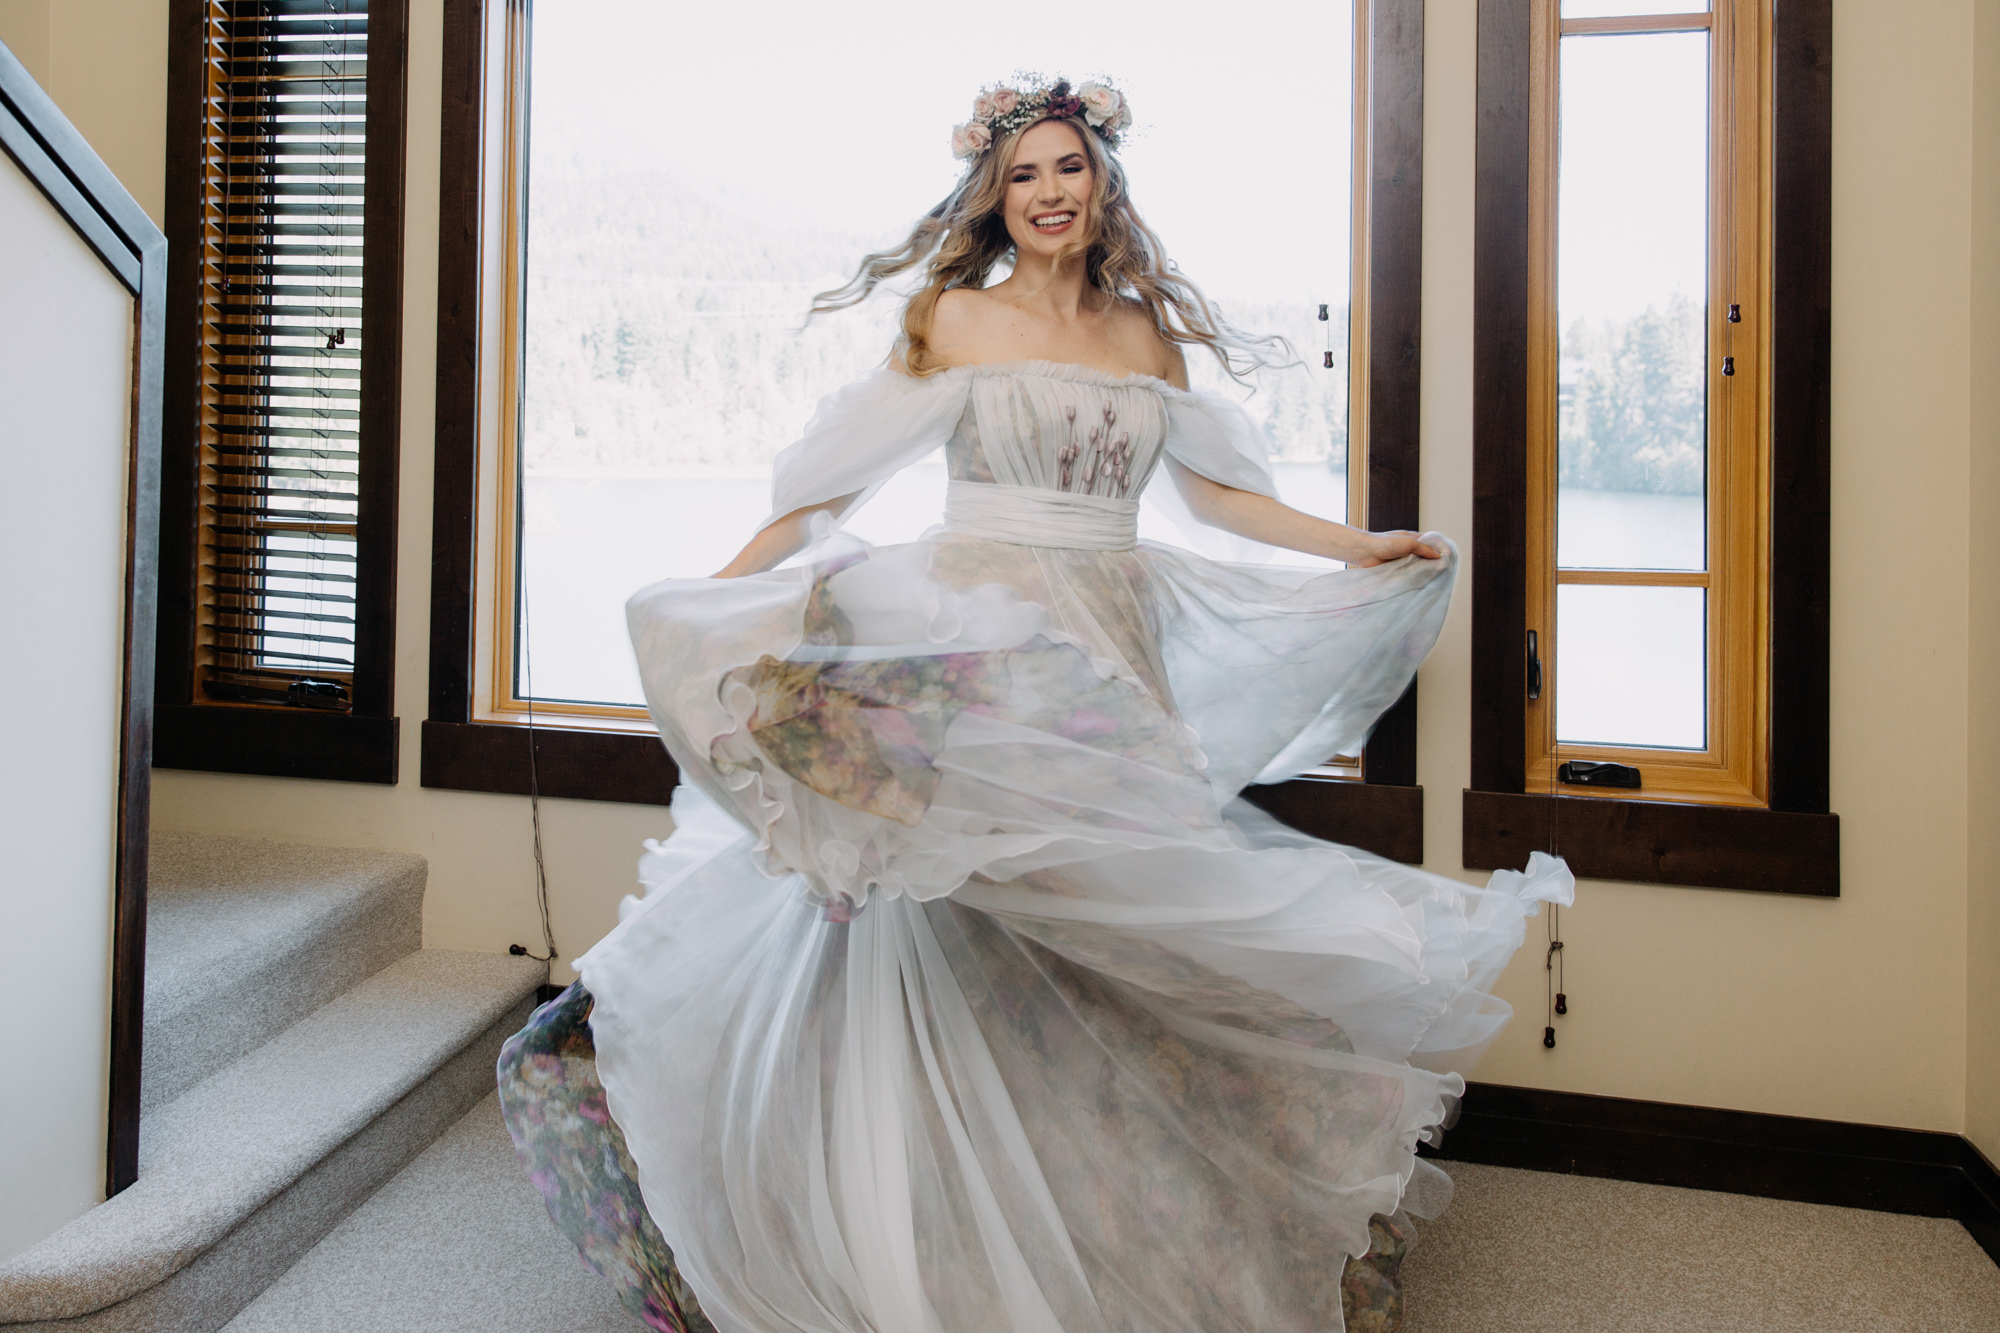 Happy bride twirling in her floral wedding dress before her intimate wedding ceremony in Whistler